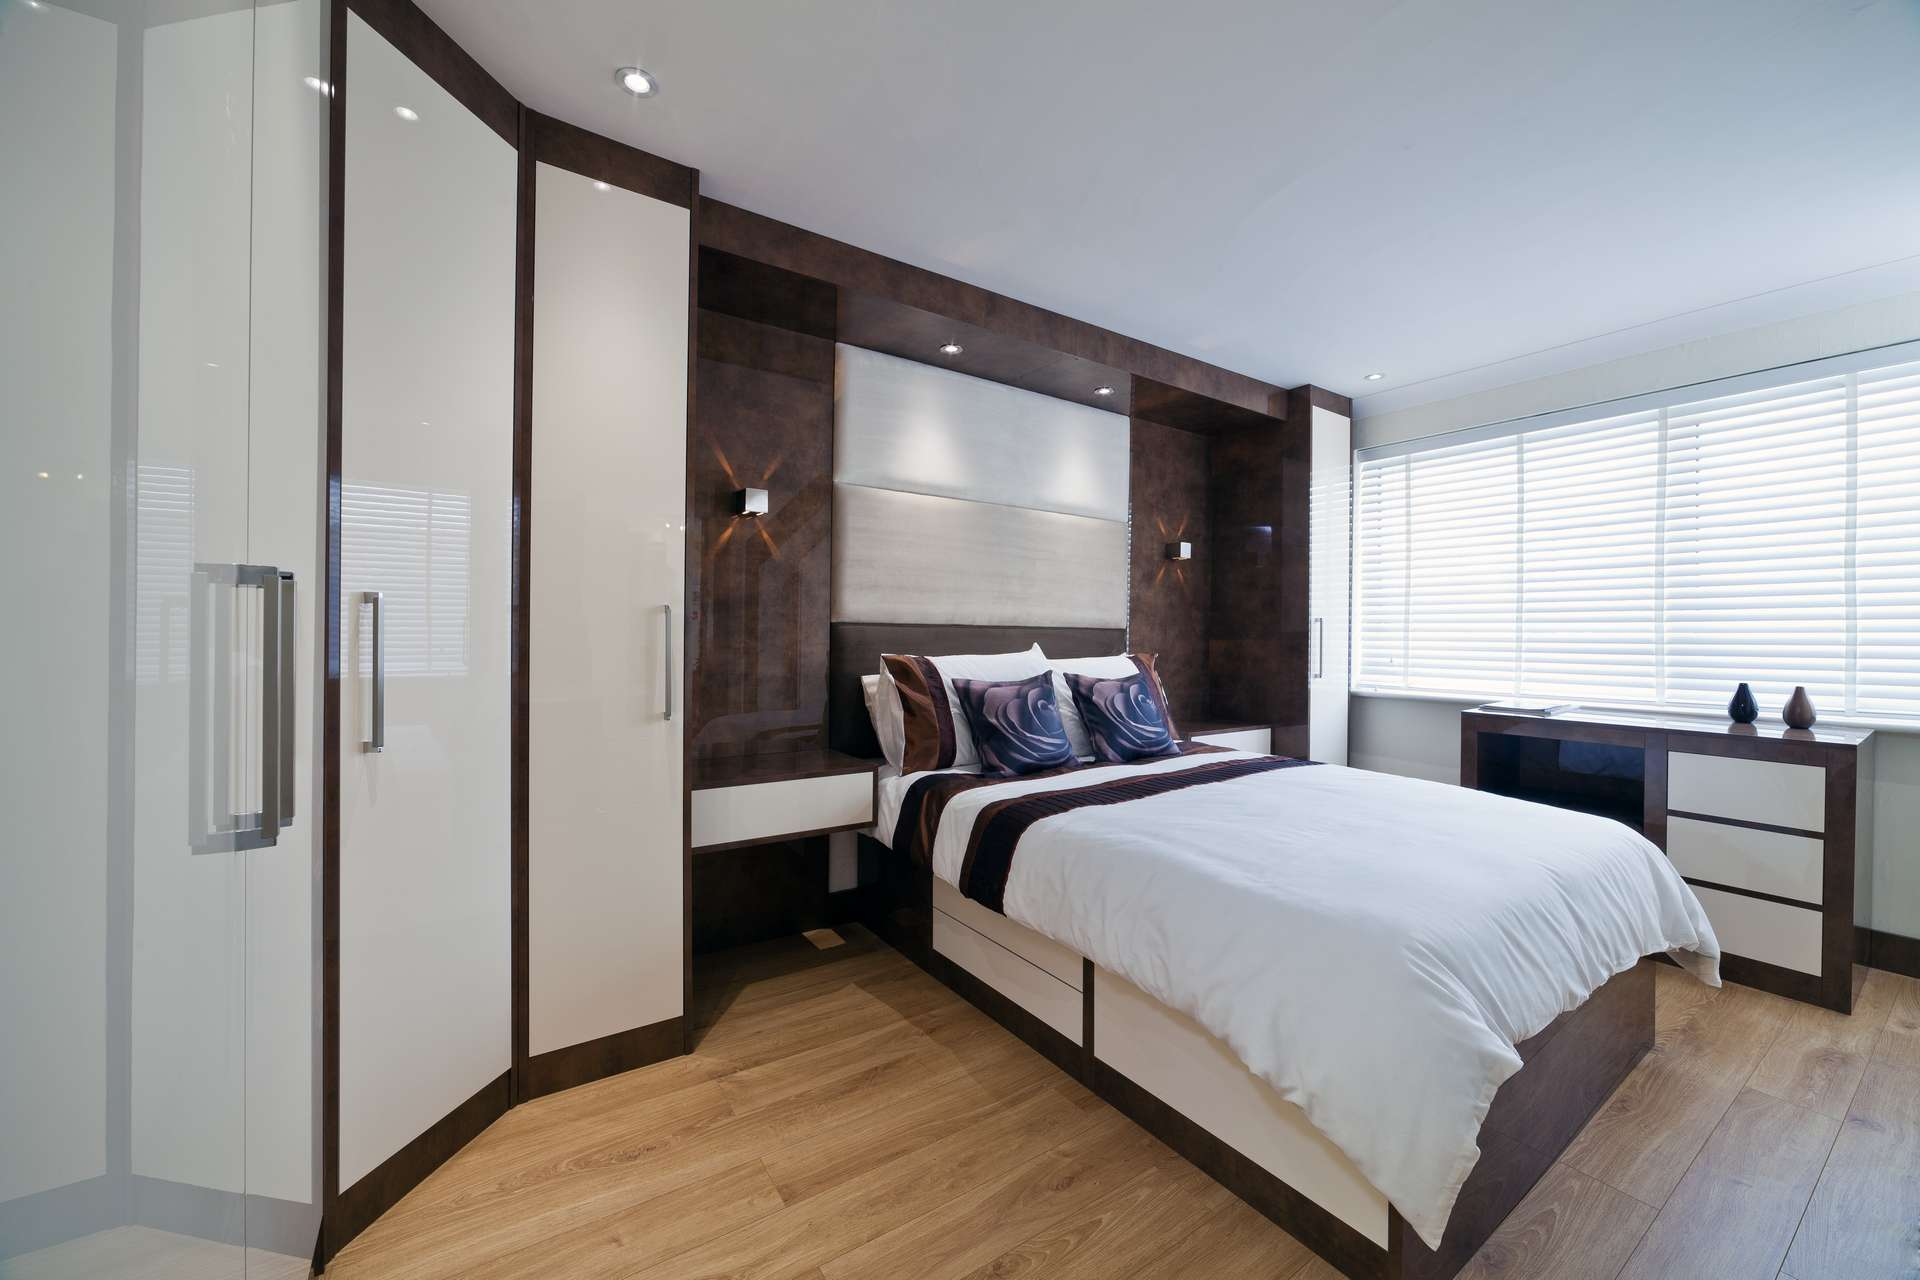 High gloss white fitted bedroom wardrobe doors for bedroom furniture design ideas